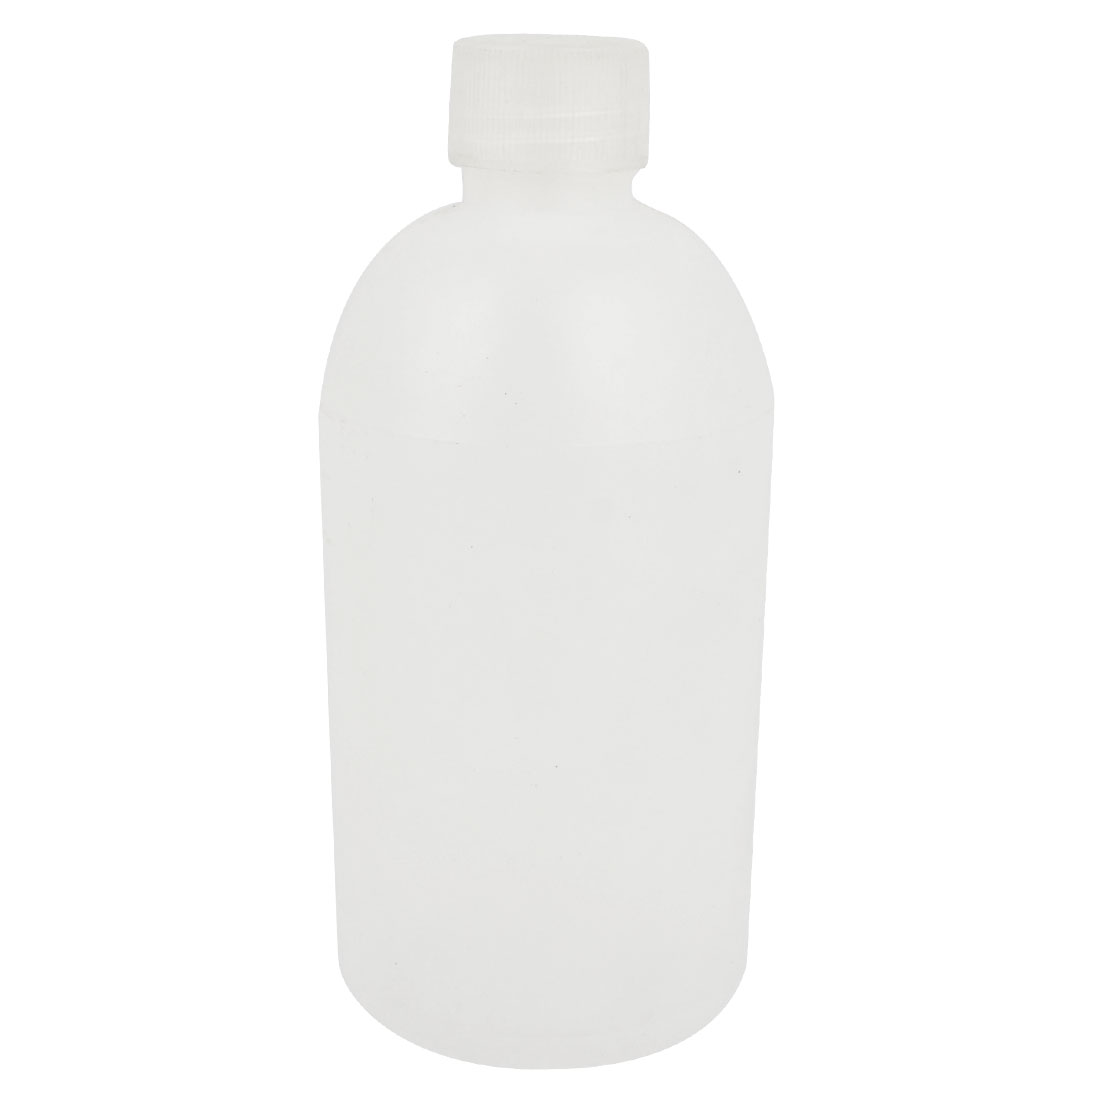 White Plastic 500mL Capacity Laboratory Storage Narrow Mouth Bottle